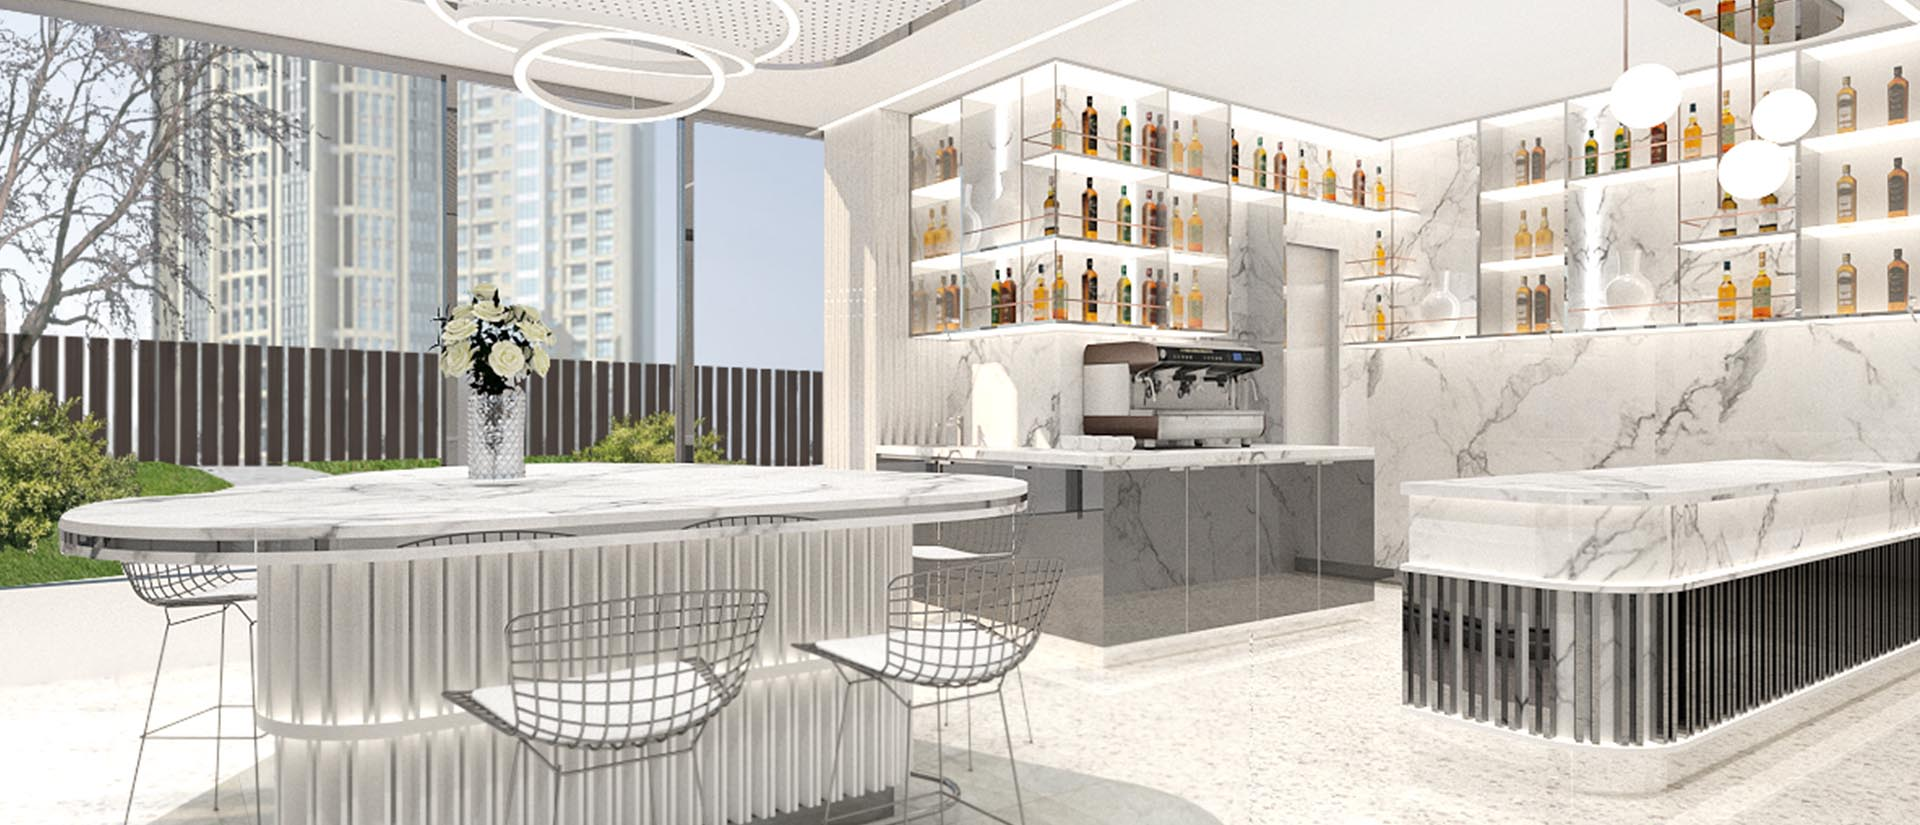 Projects-MedC_Collins Street 6